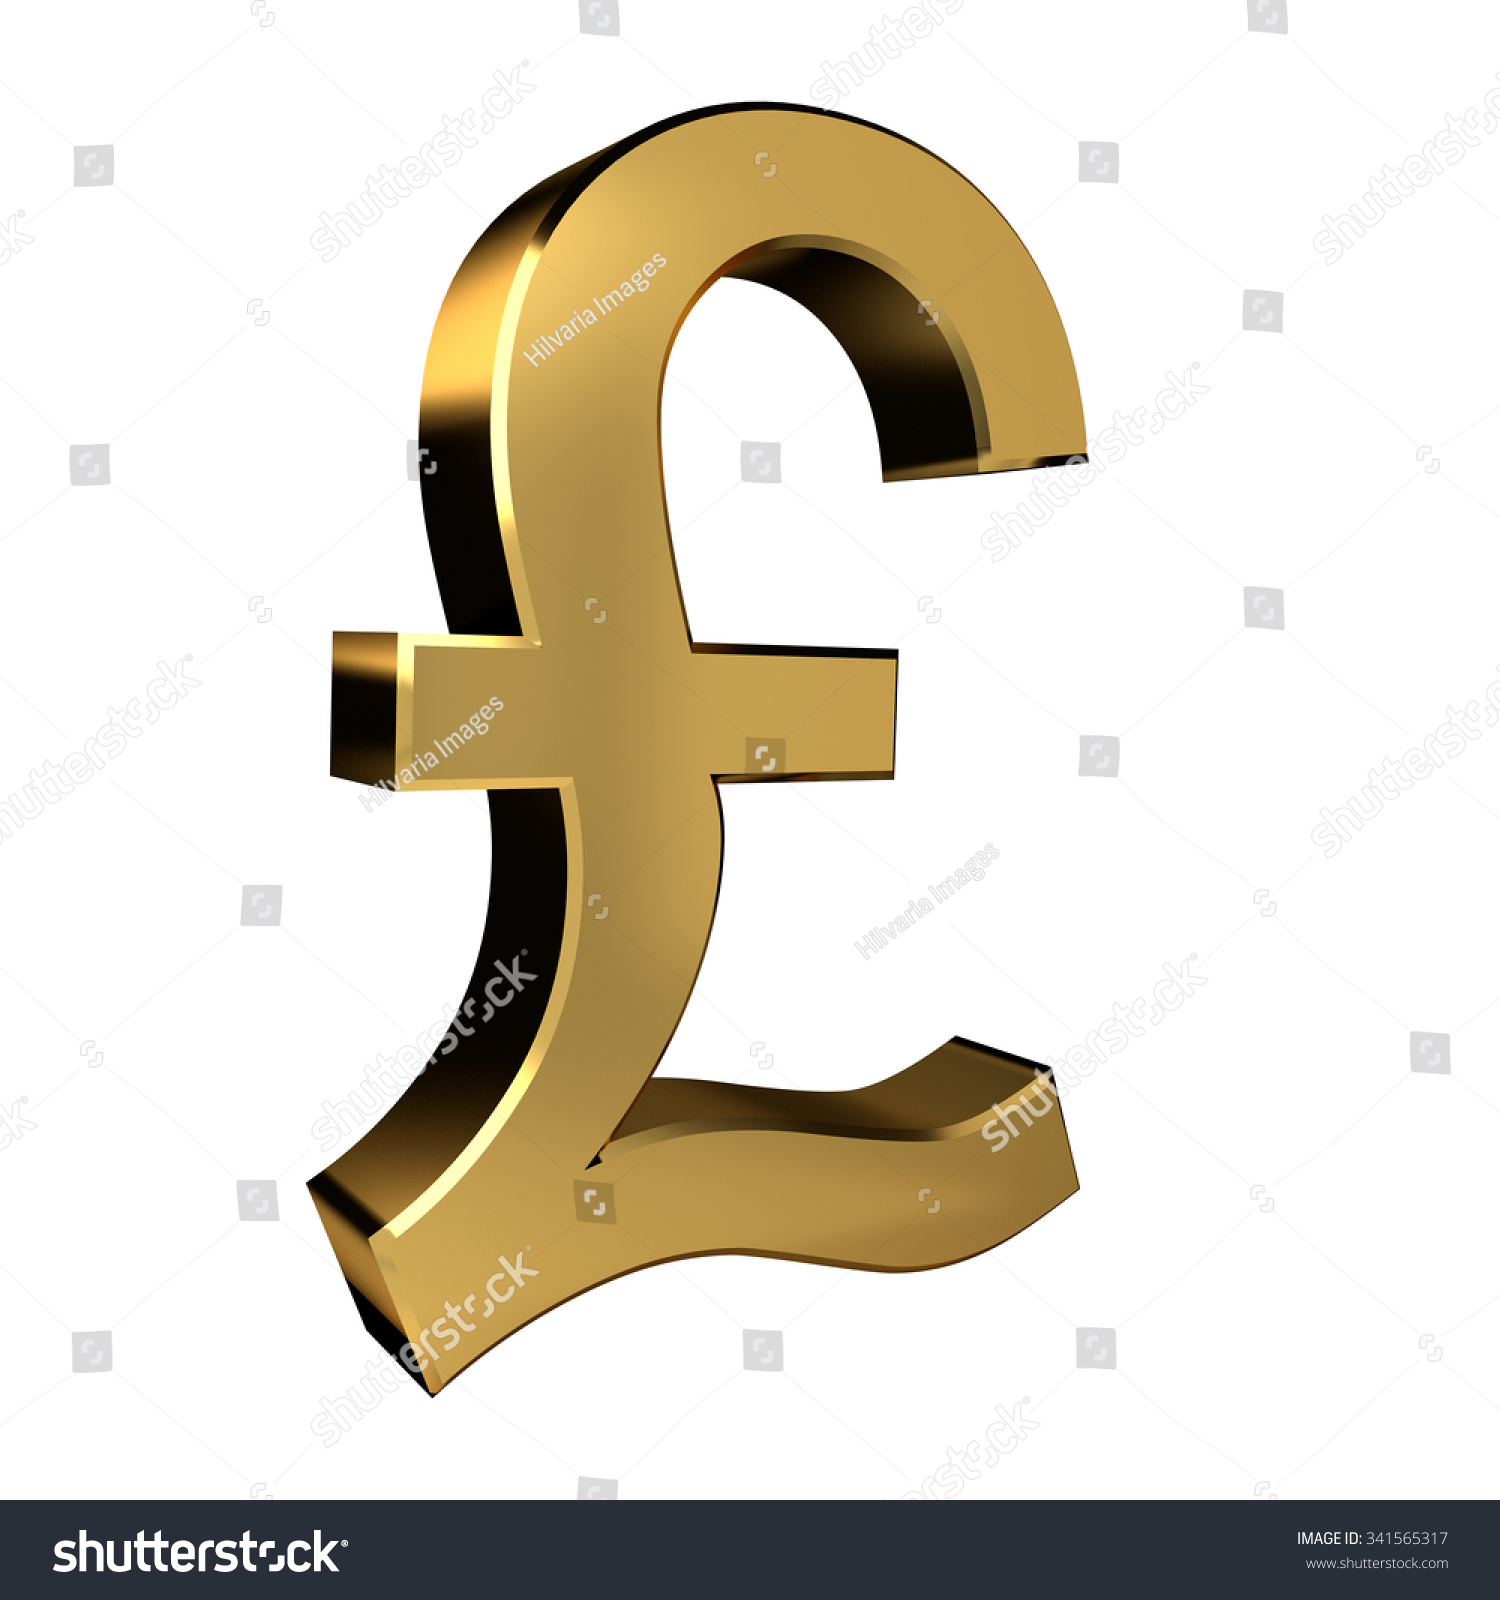 Gold Colored Pound Symbol Stock Illustration 341565317 Shutterstock